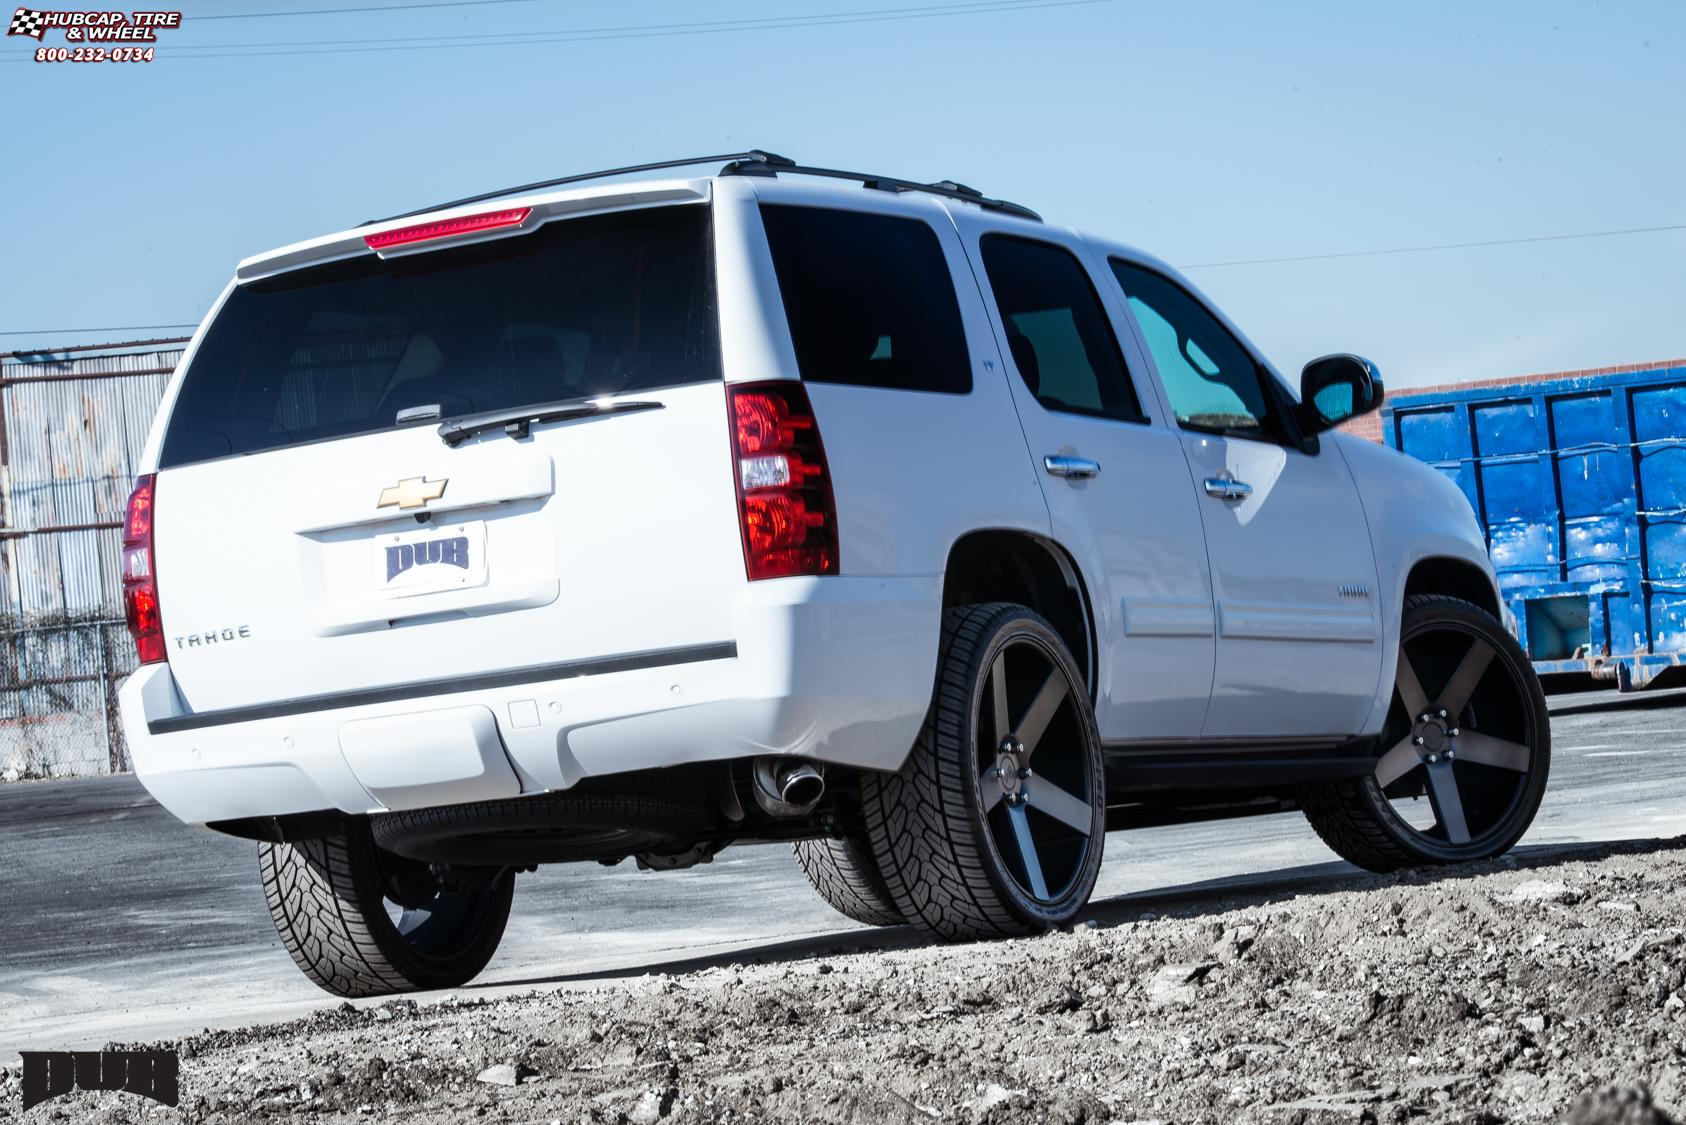 Chevrolet Tahoe Dub Baller - S116 Wheels Black & Machined ...